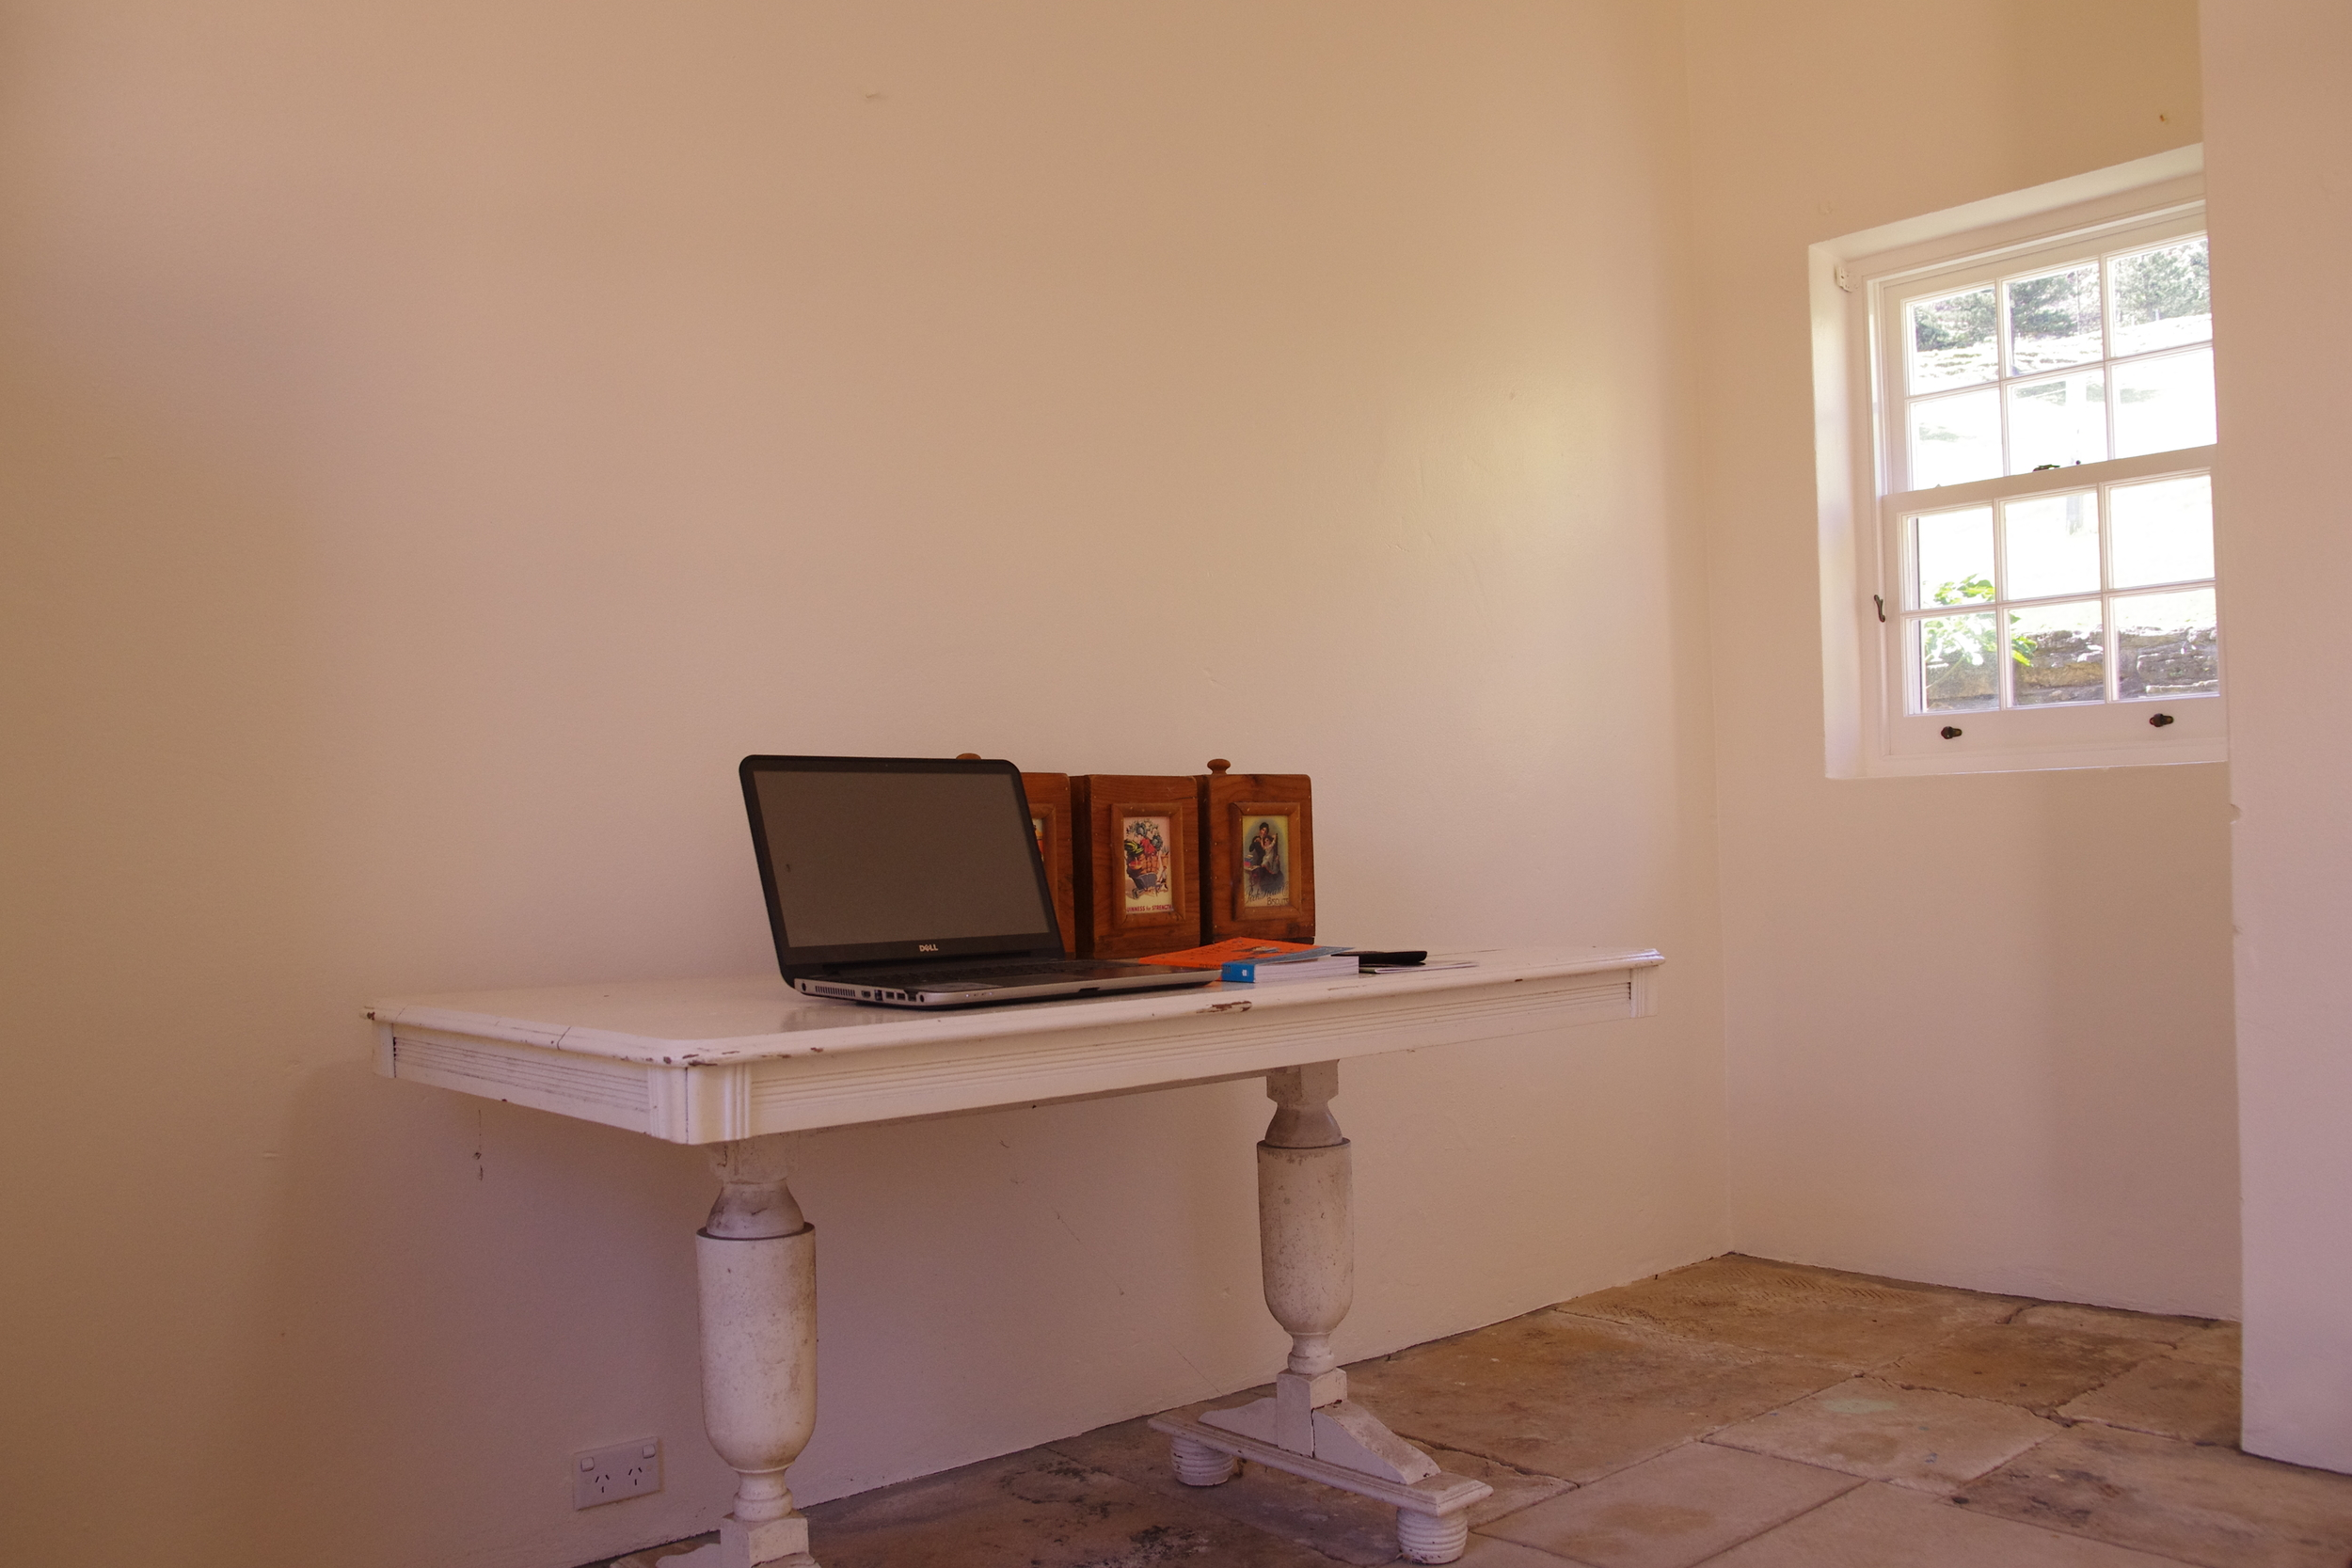 The table (needs a bit more a clean), and awaits a chair.